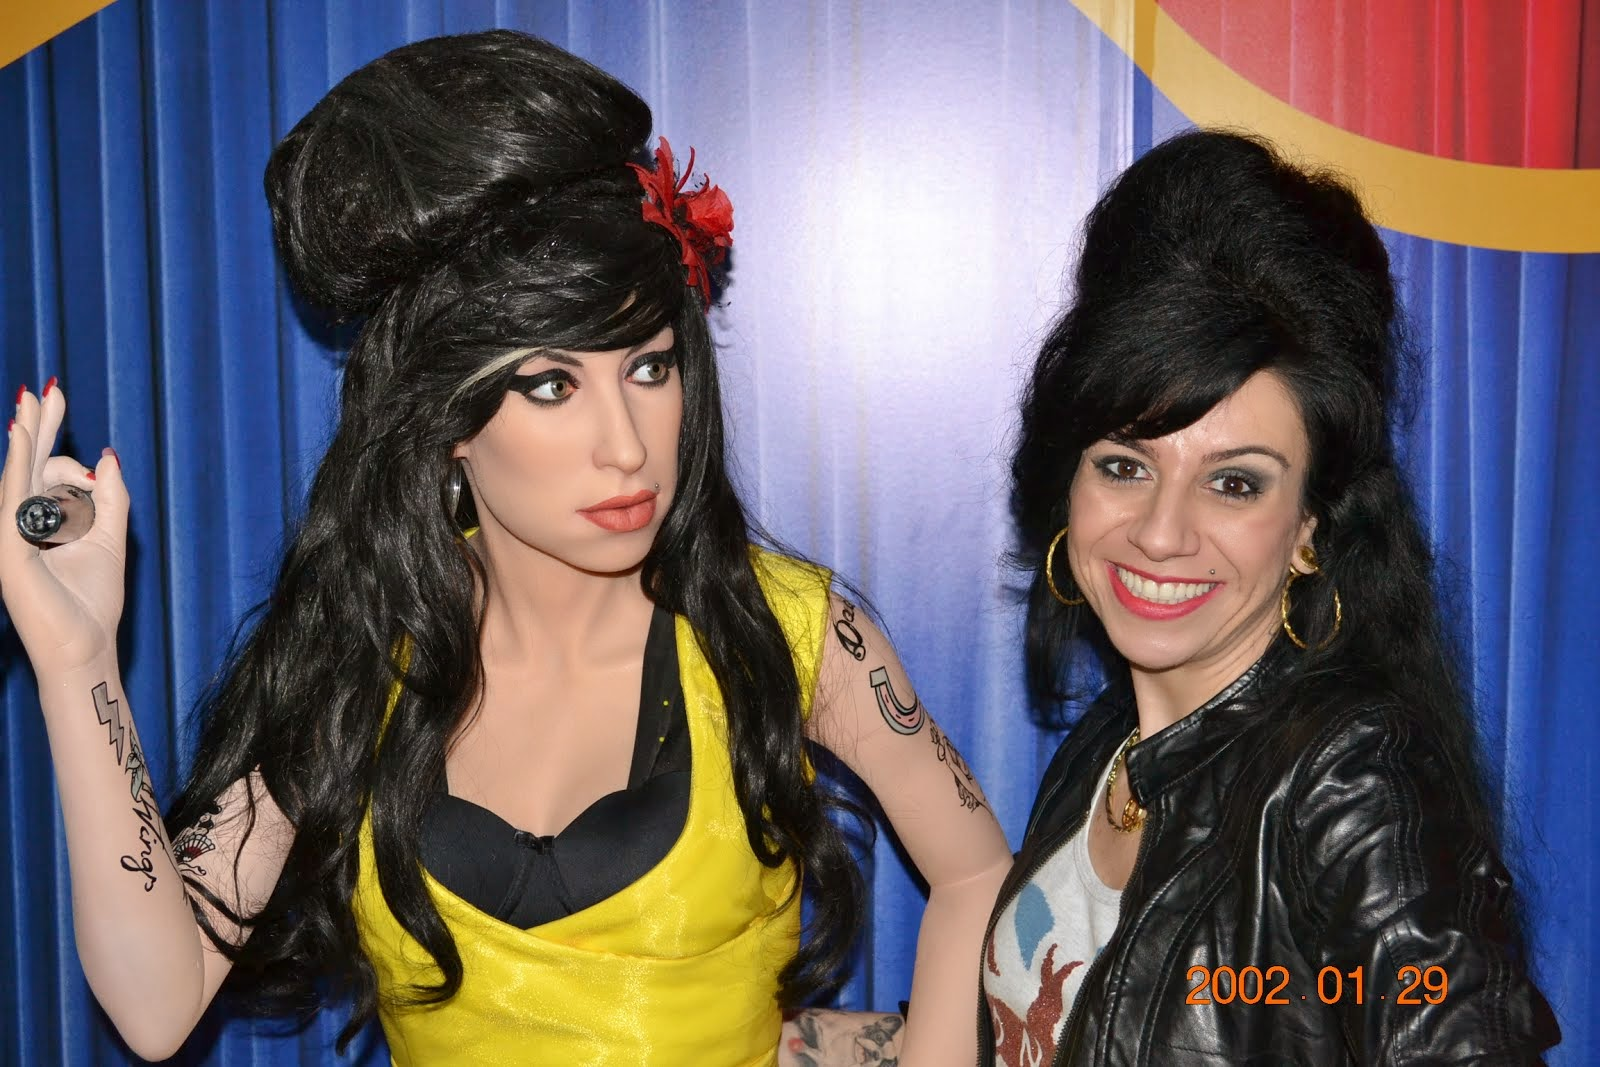 Sósia Amy Winehouse e Amy Winehouse